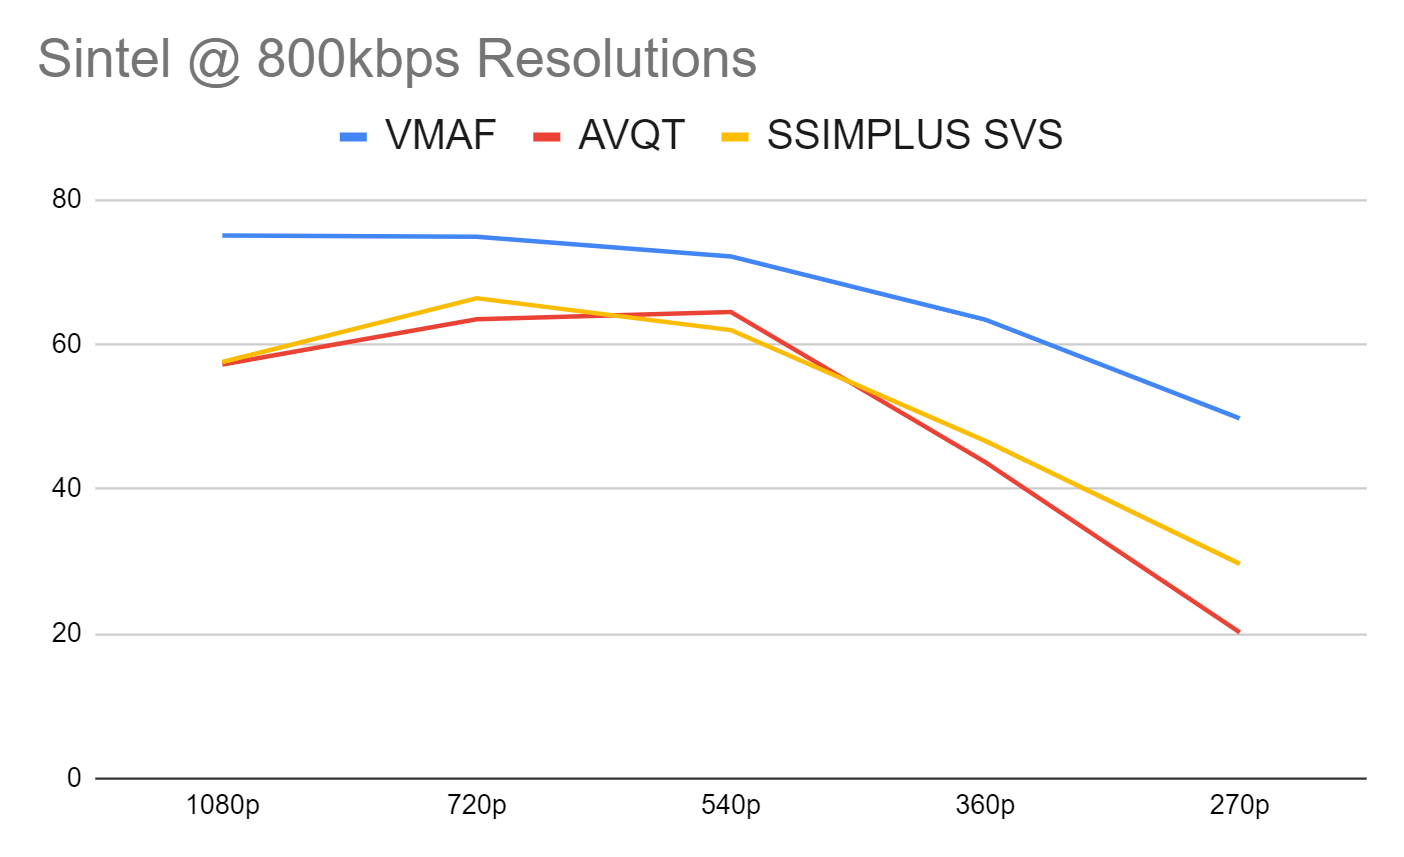 Gauging the highest quality resolution at 800 kbps in the Sintel clip using AVQT, VMAF, and SSIMPLUS.